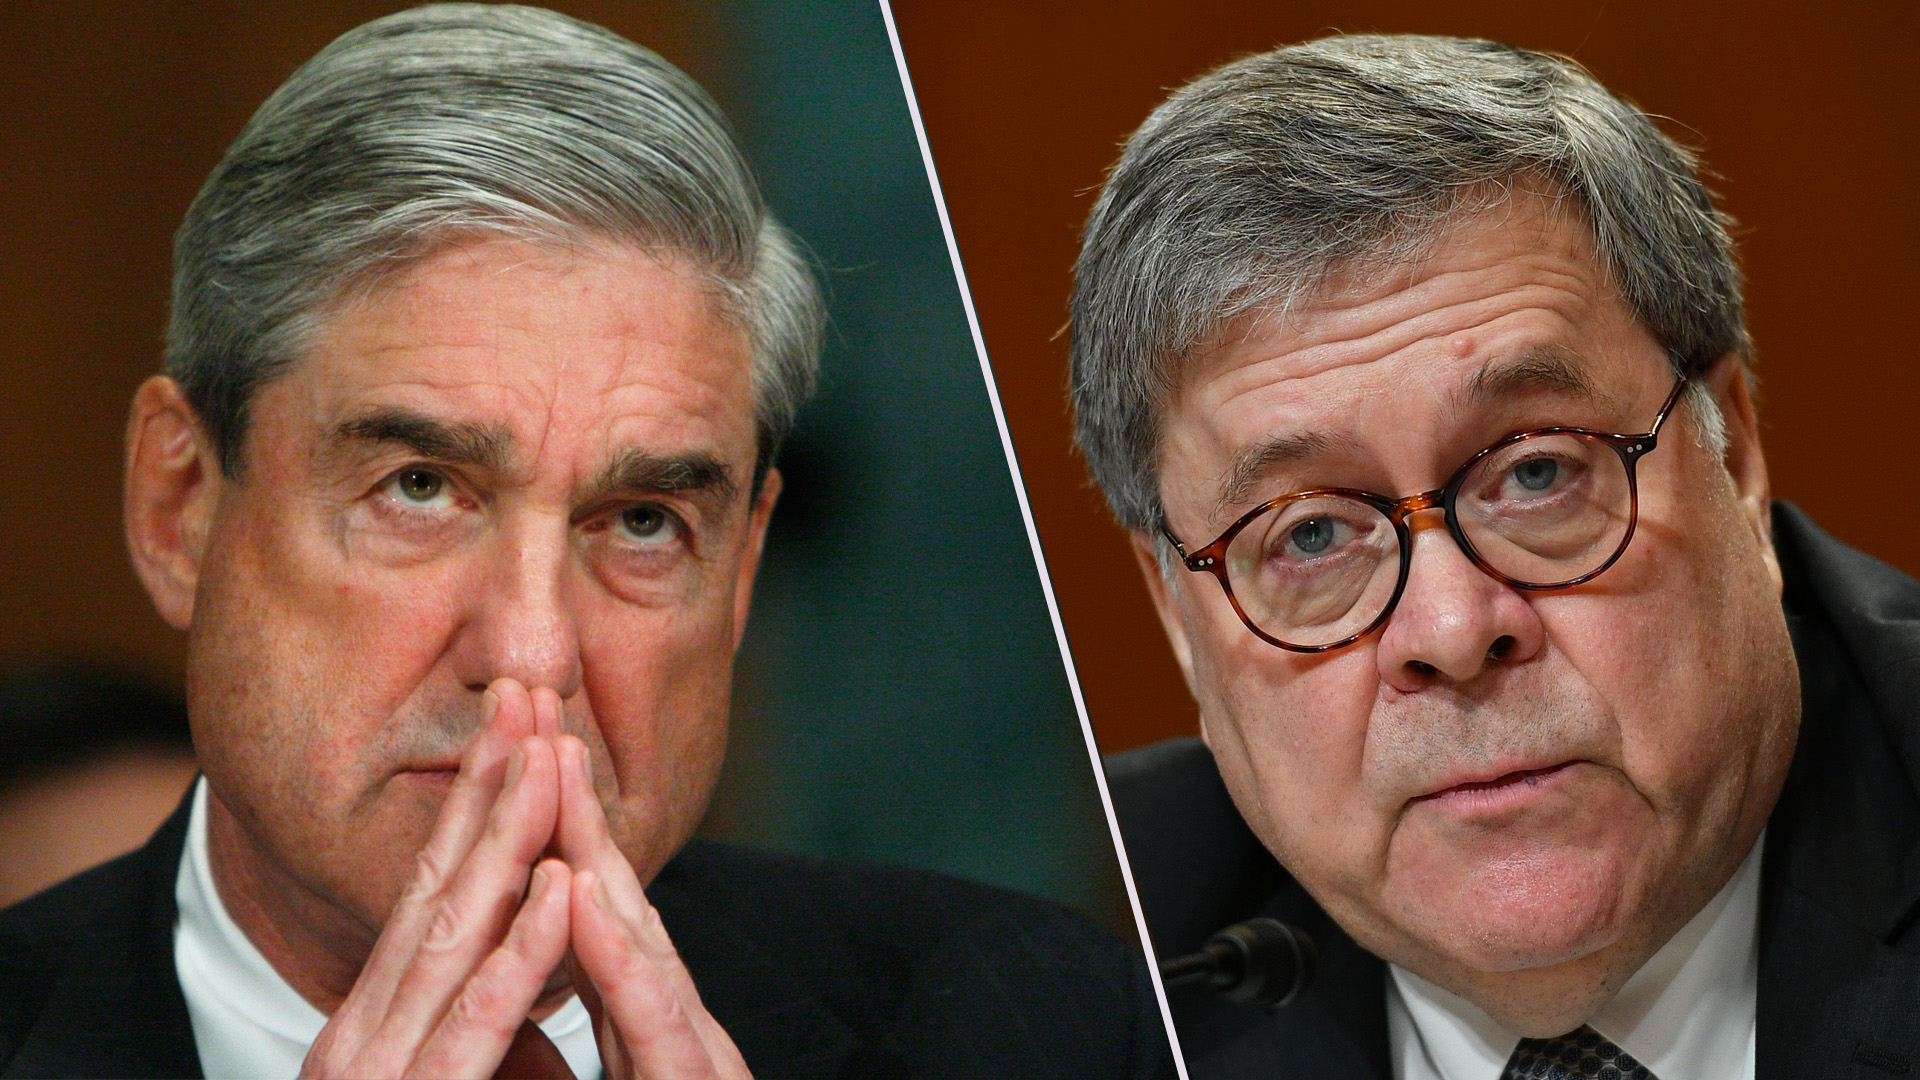 Special Counsel Robert Mueller and Attorney General William Barr are pictured side-by-side. (Credit: Ann Heisenfelt/MANDEL NGAN/AFP/Getty Images)